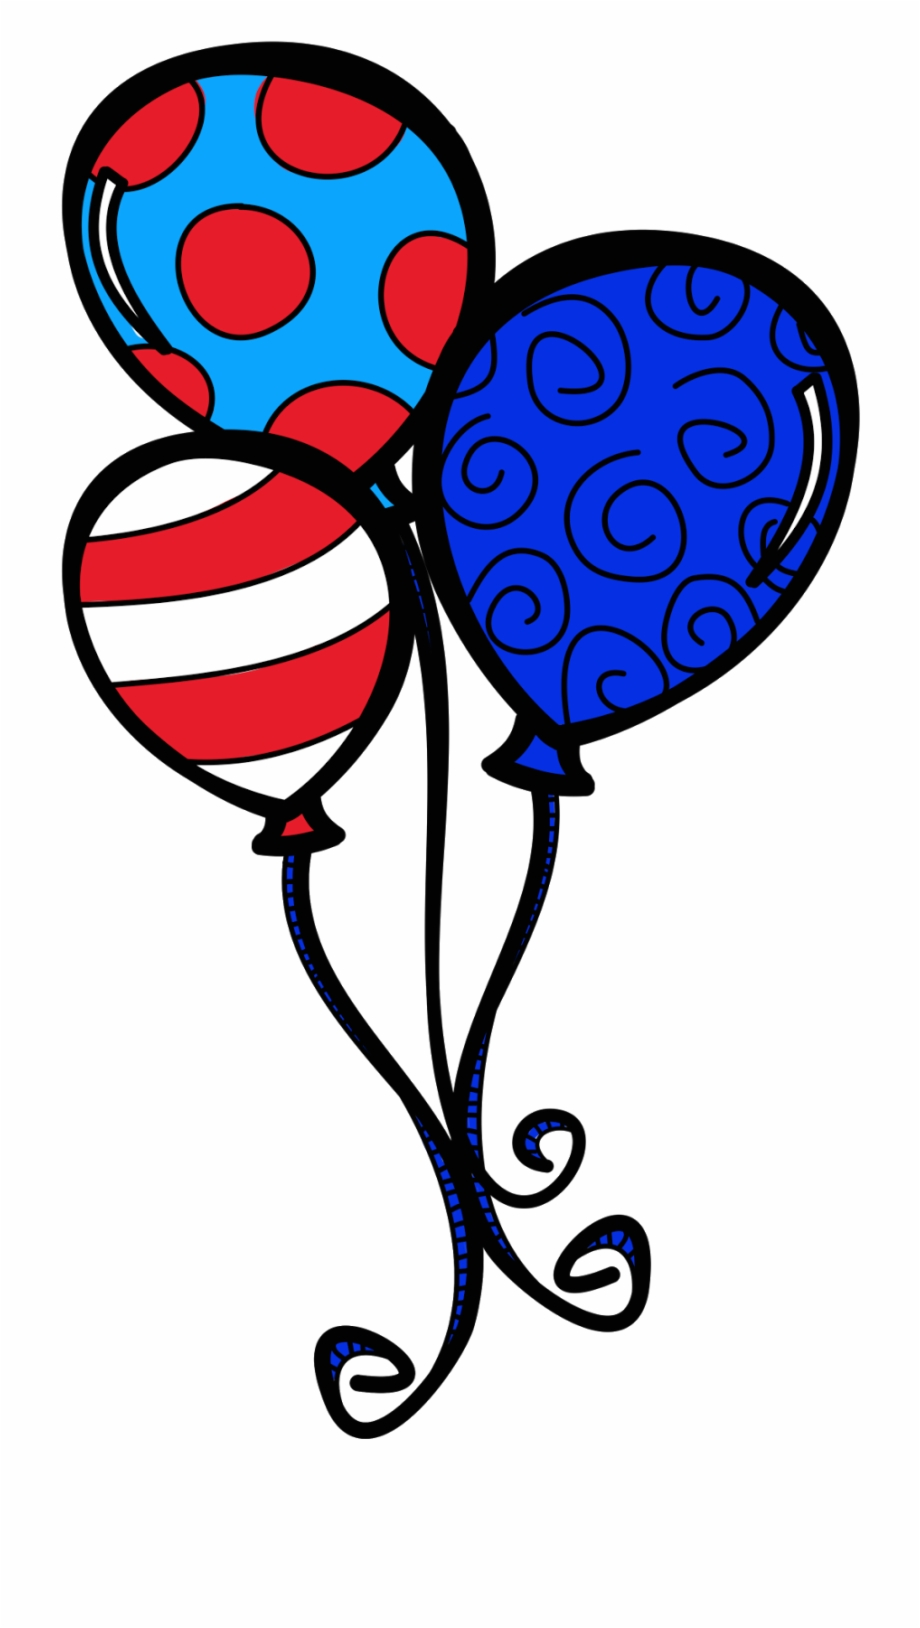 Happy birthday dr seuss clipart banner freeuse library Dr Seuss Balloon Clipart - Happy Birthday Dr Seuss Balloons ... banner freeuse library